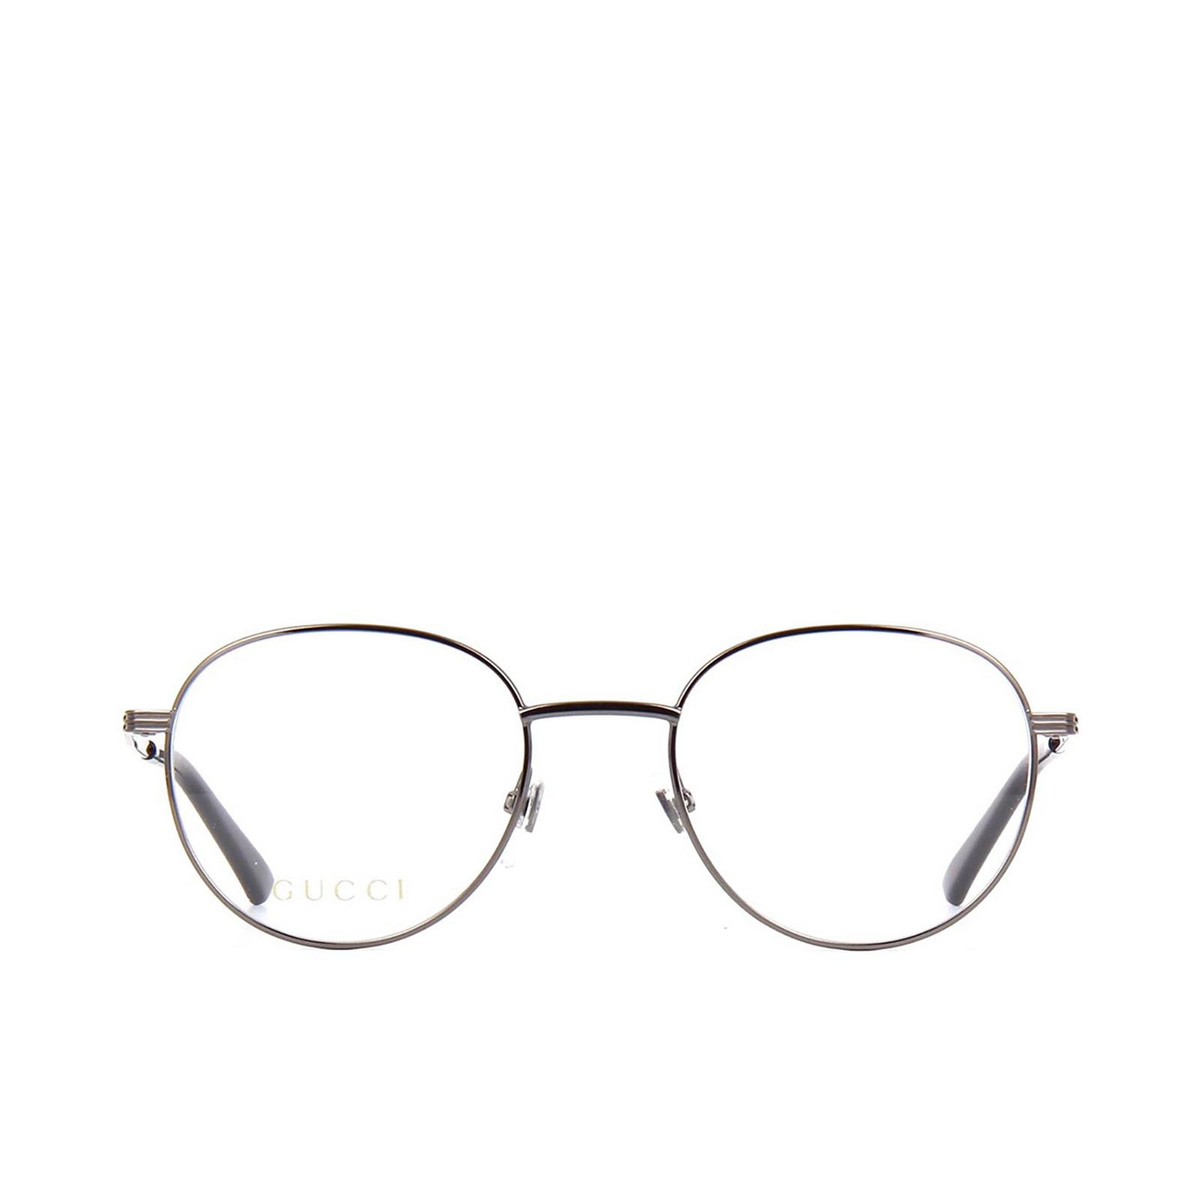 Gucci® Round Eyeglasses: GG0835O color Ruthenium 005 - front view.